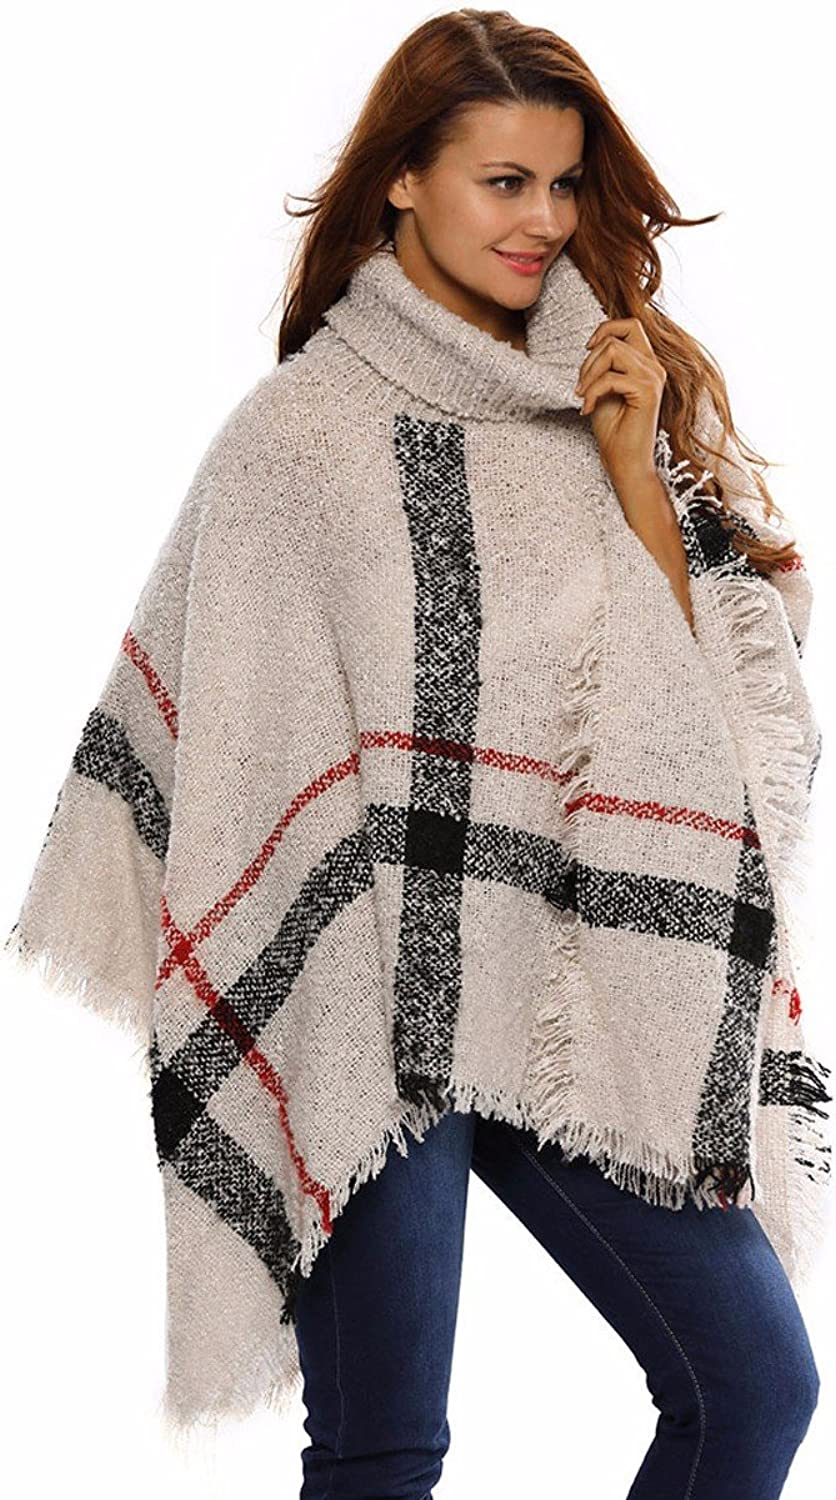 DHWMAutumn Winter Knitting Stylish High Collar So That Shawls Wild Sweater Jacket Is Code